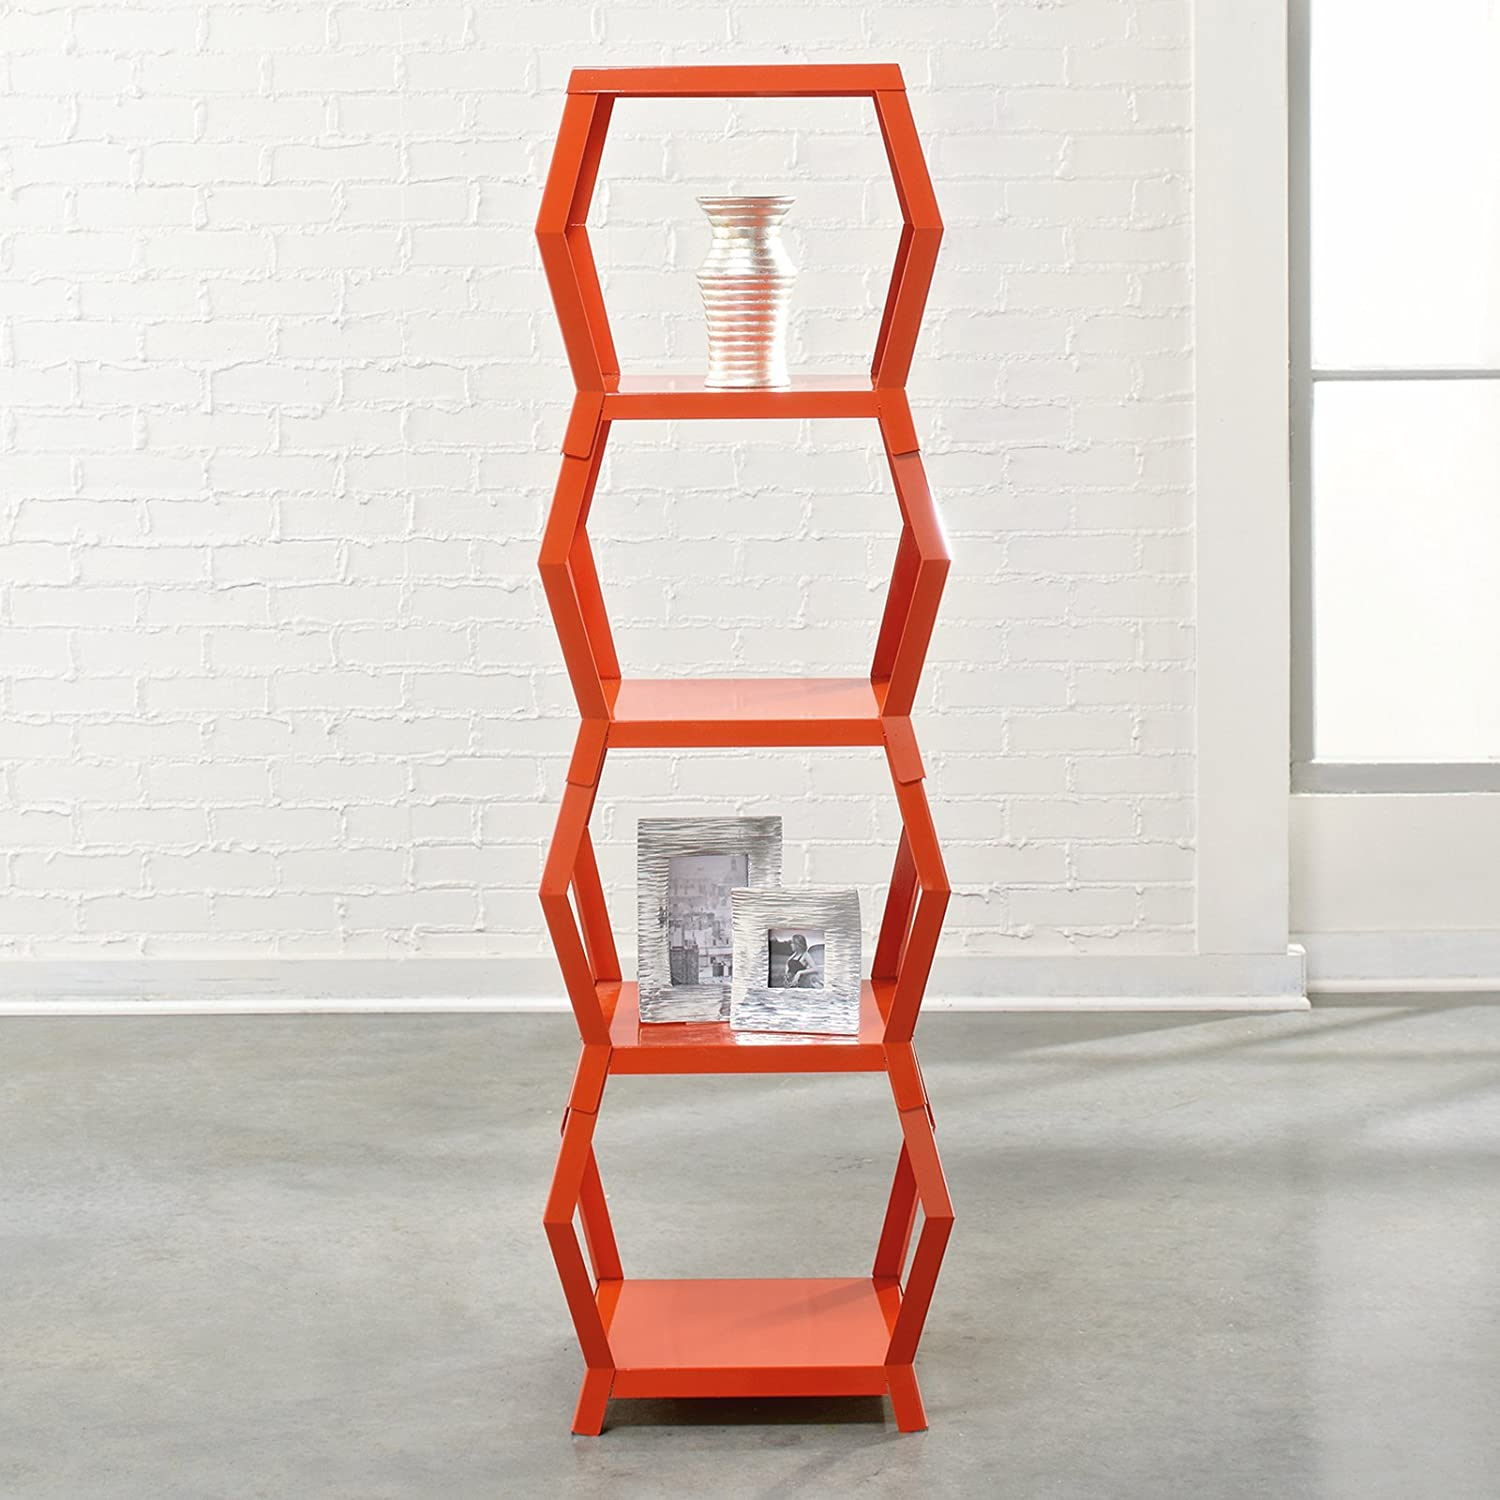 amazoncom sauder soft modern tower etagere and bookcase orange  - amazoncom sauder soft modern tower etagere and bookcase orange blushkitchen  dining